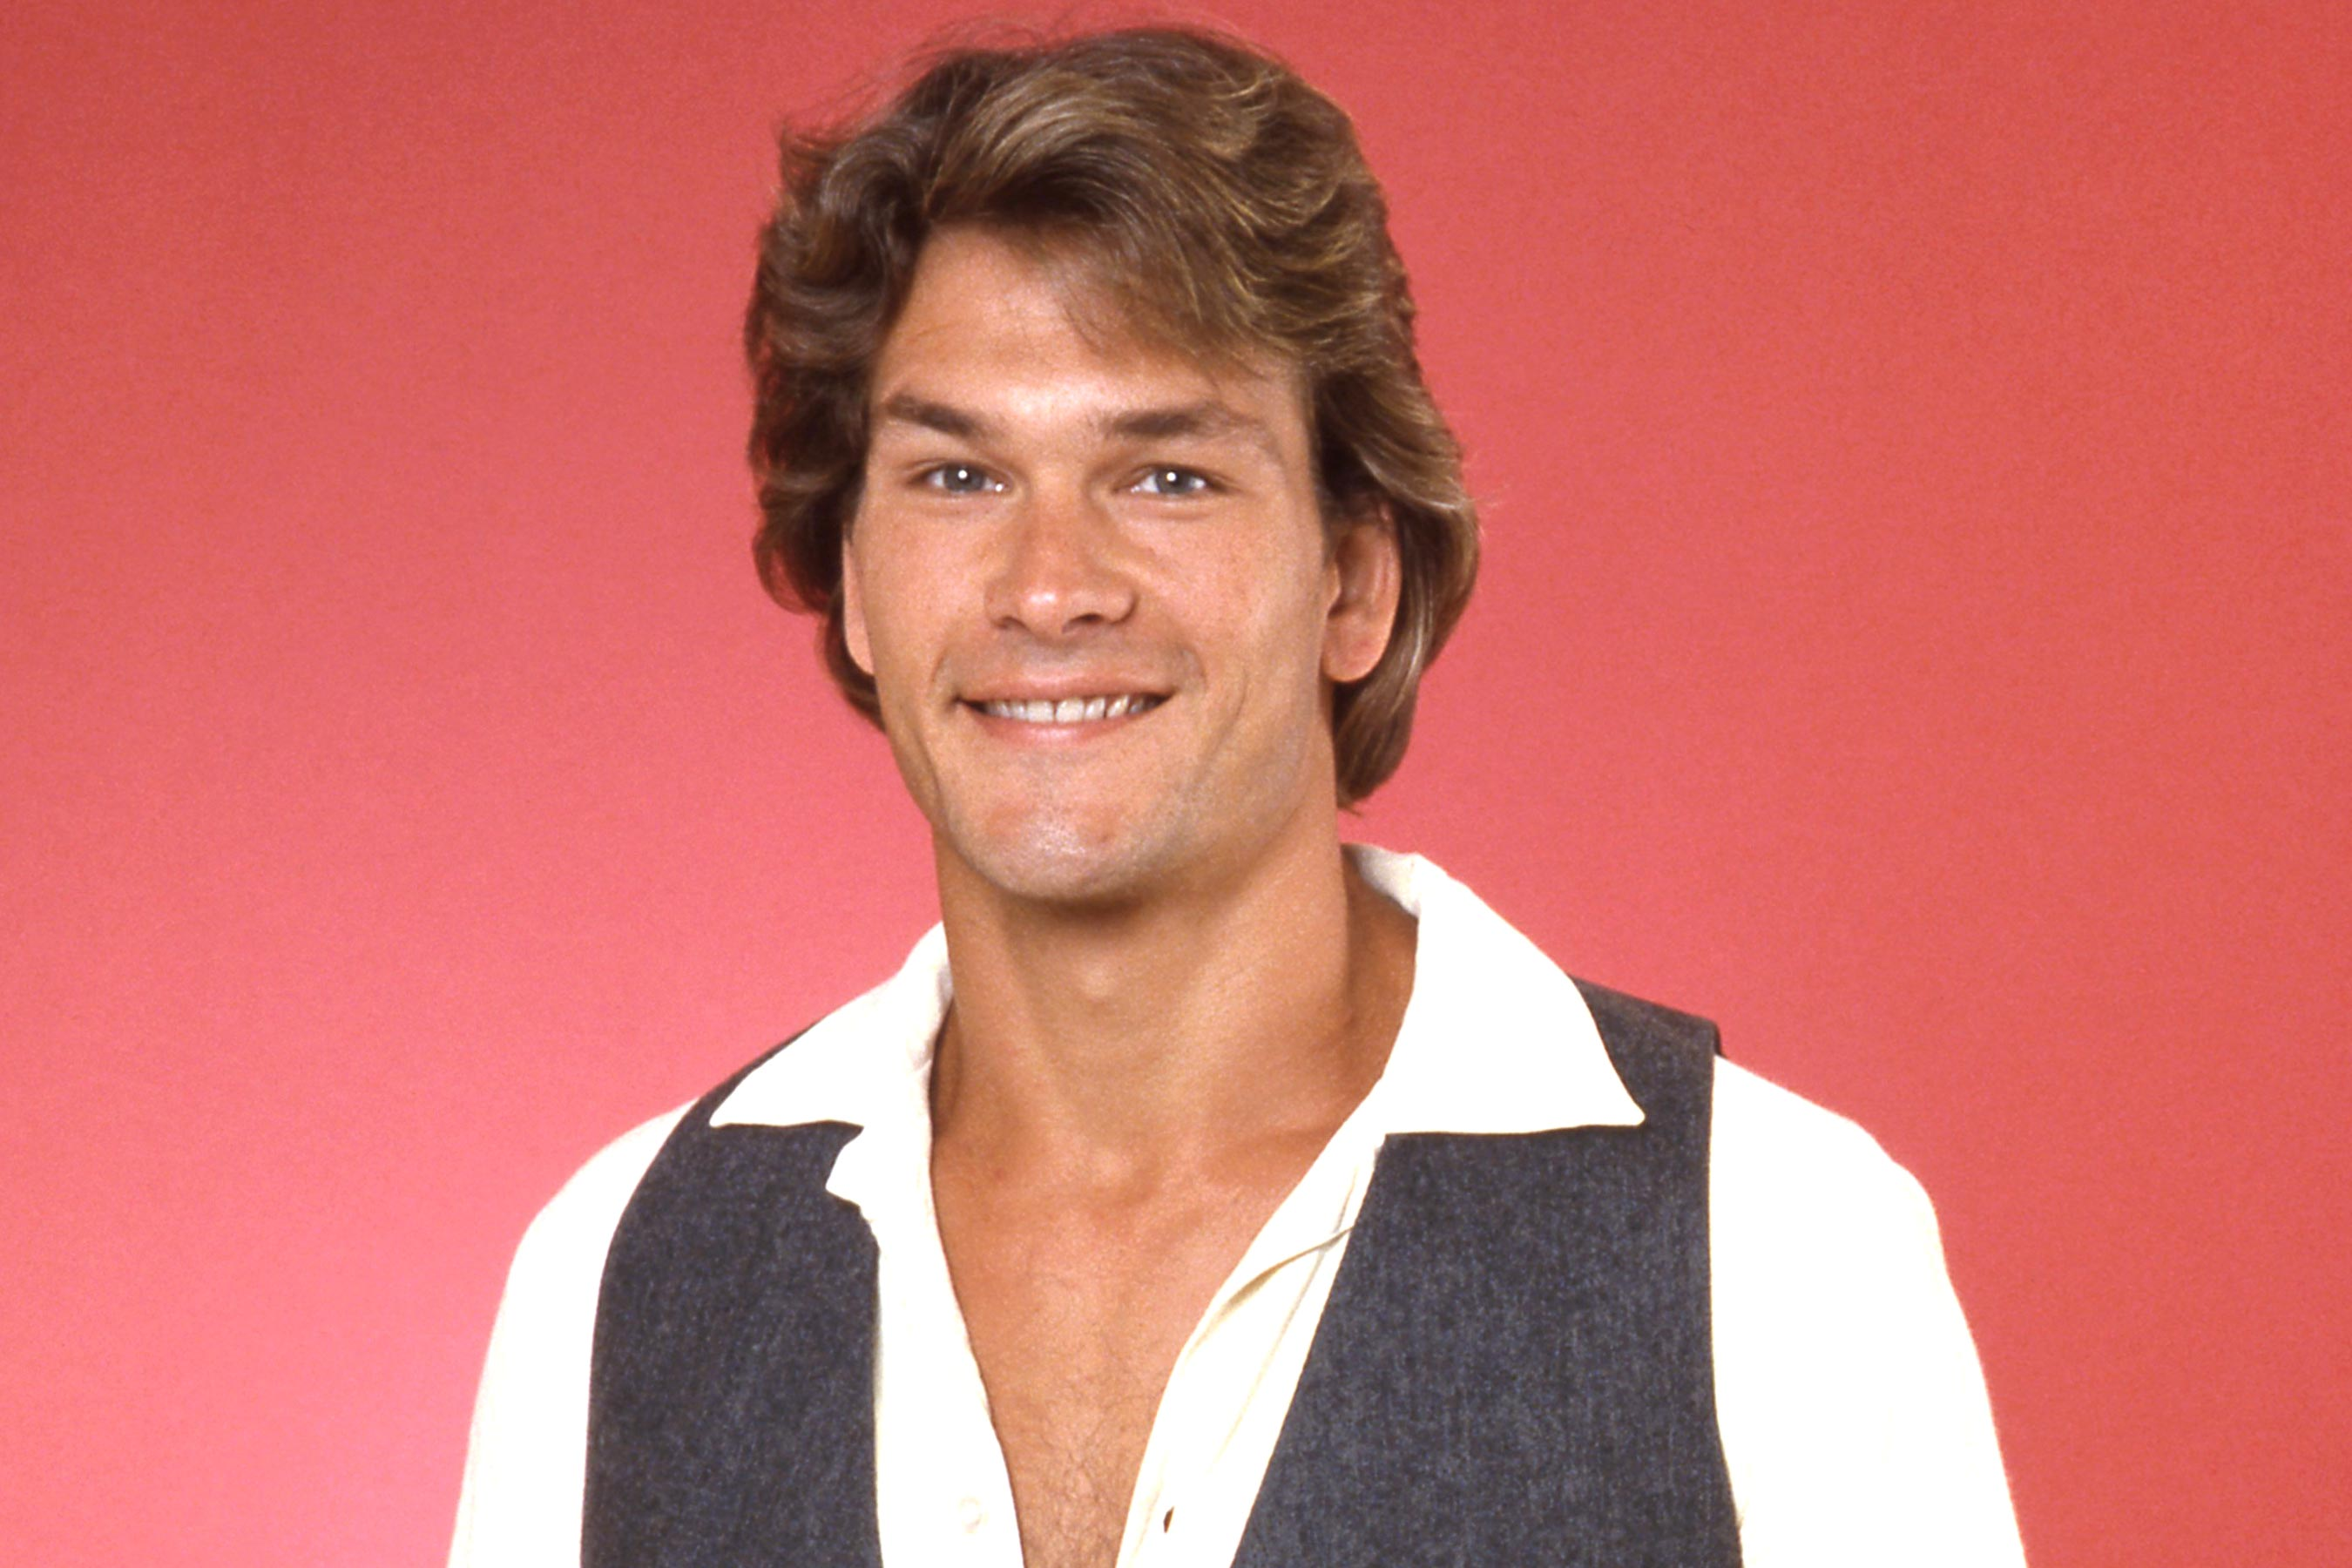 Widow lifts lid on Patrick Swayze's childhood abuse